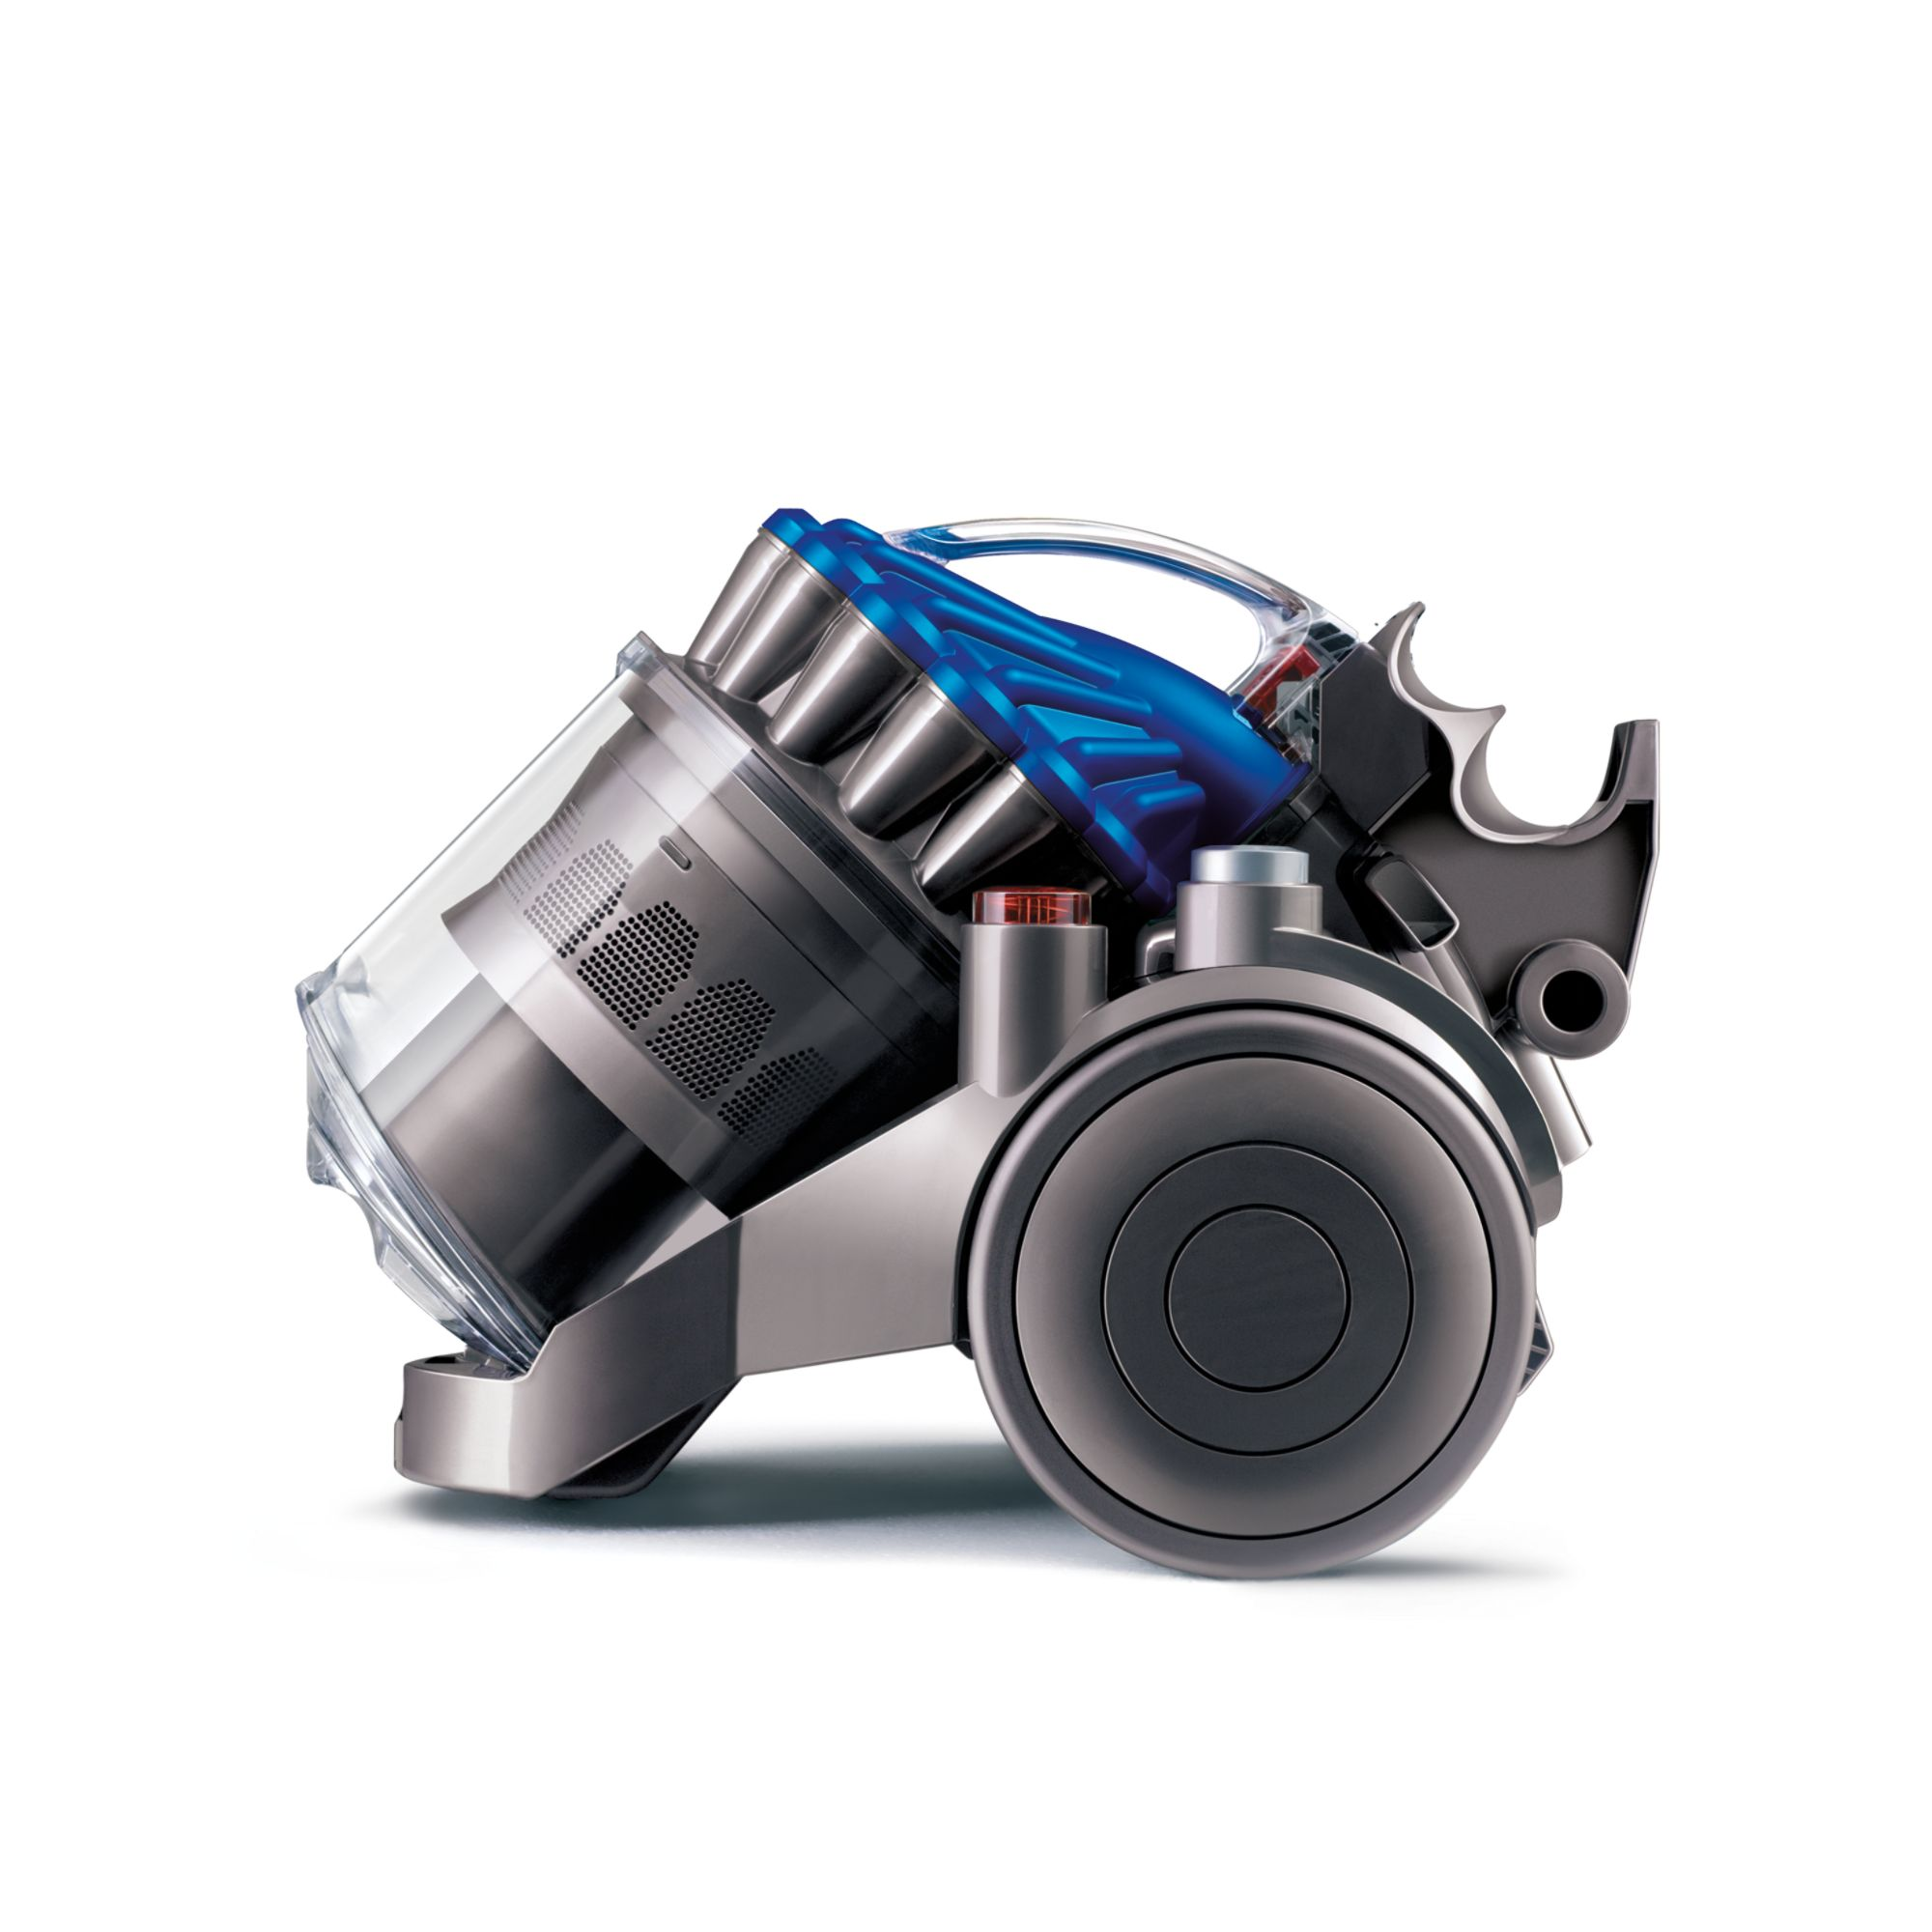 Dyson Bagless Canister Vacuum Cleaner CLOSEOUT